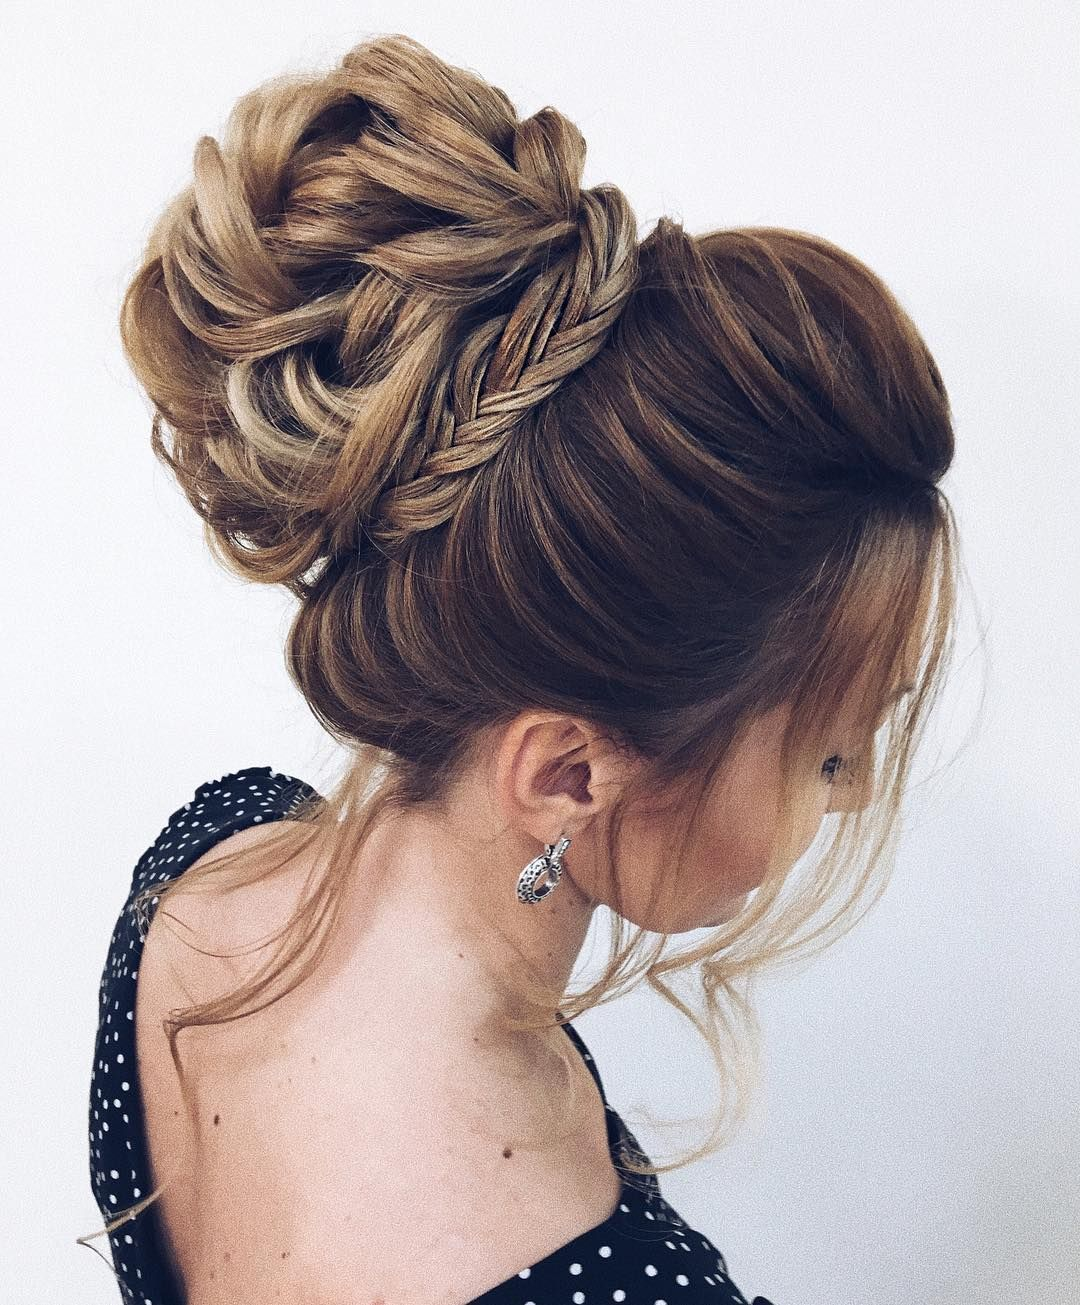 Unique Updo Hairstyle High Bun Hairstyle Prom Hairstyles Wedding Hairstyle Ideas Wedding Weddinghair Hair Styles High Bun Hairstyles Elegant Wedding Hair